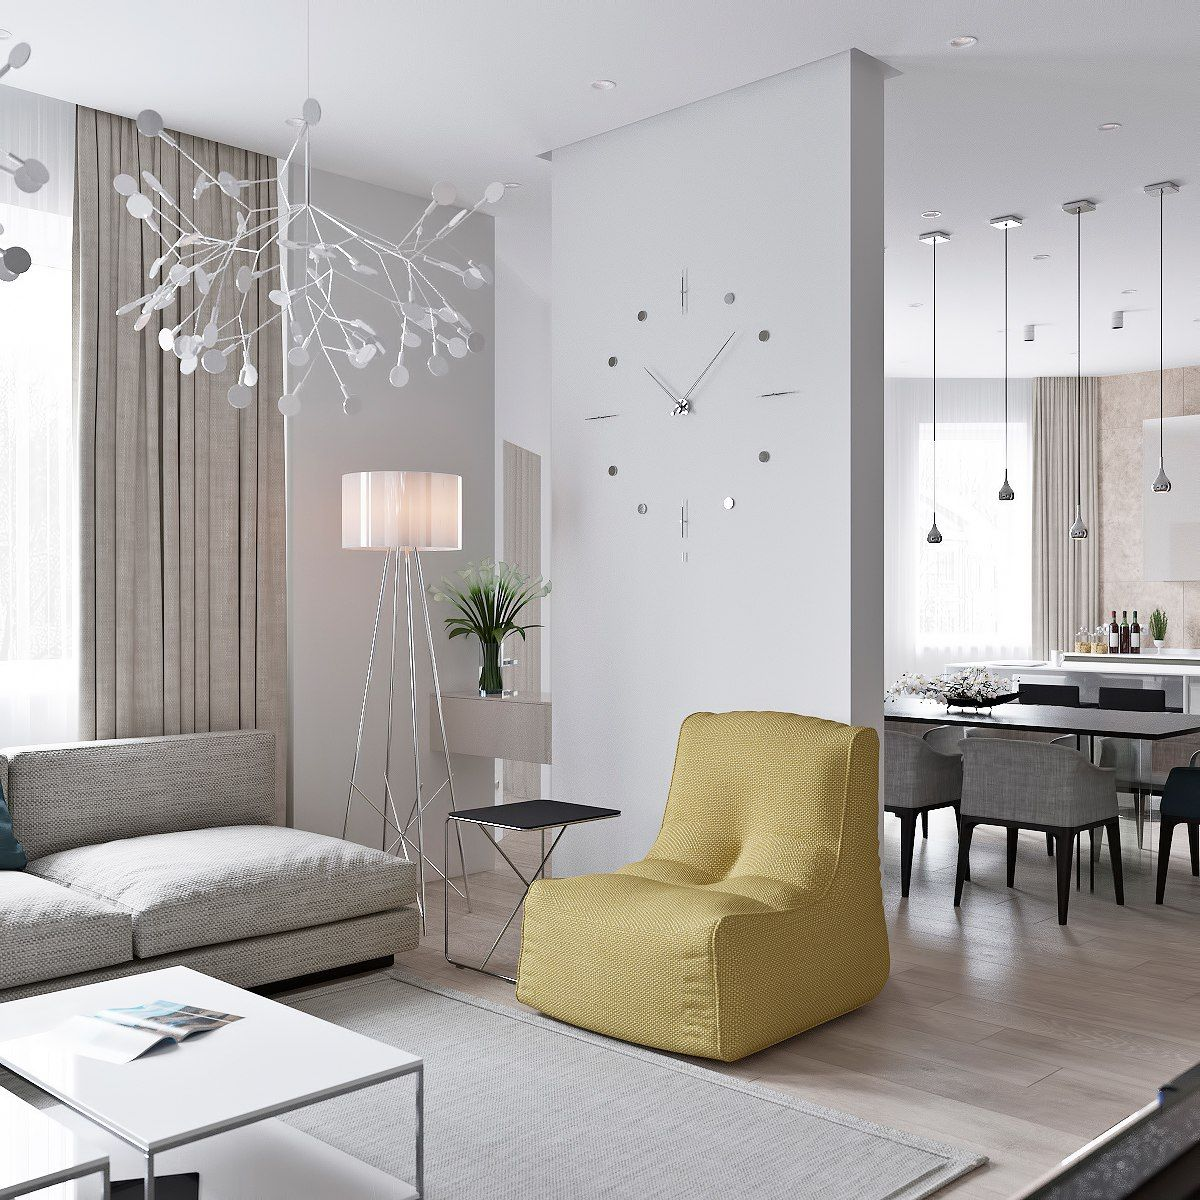 3 Light Interiors With Creative Pops Of Color | Wohnzimmer, Salons ...